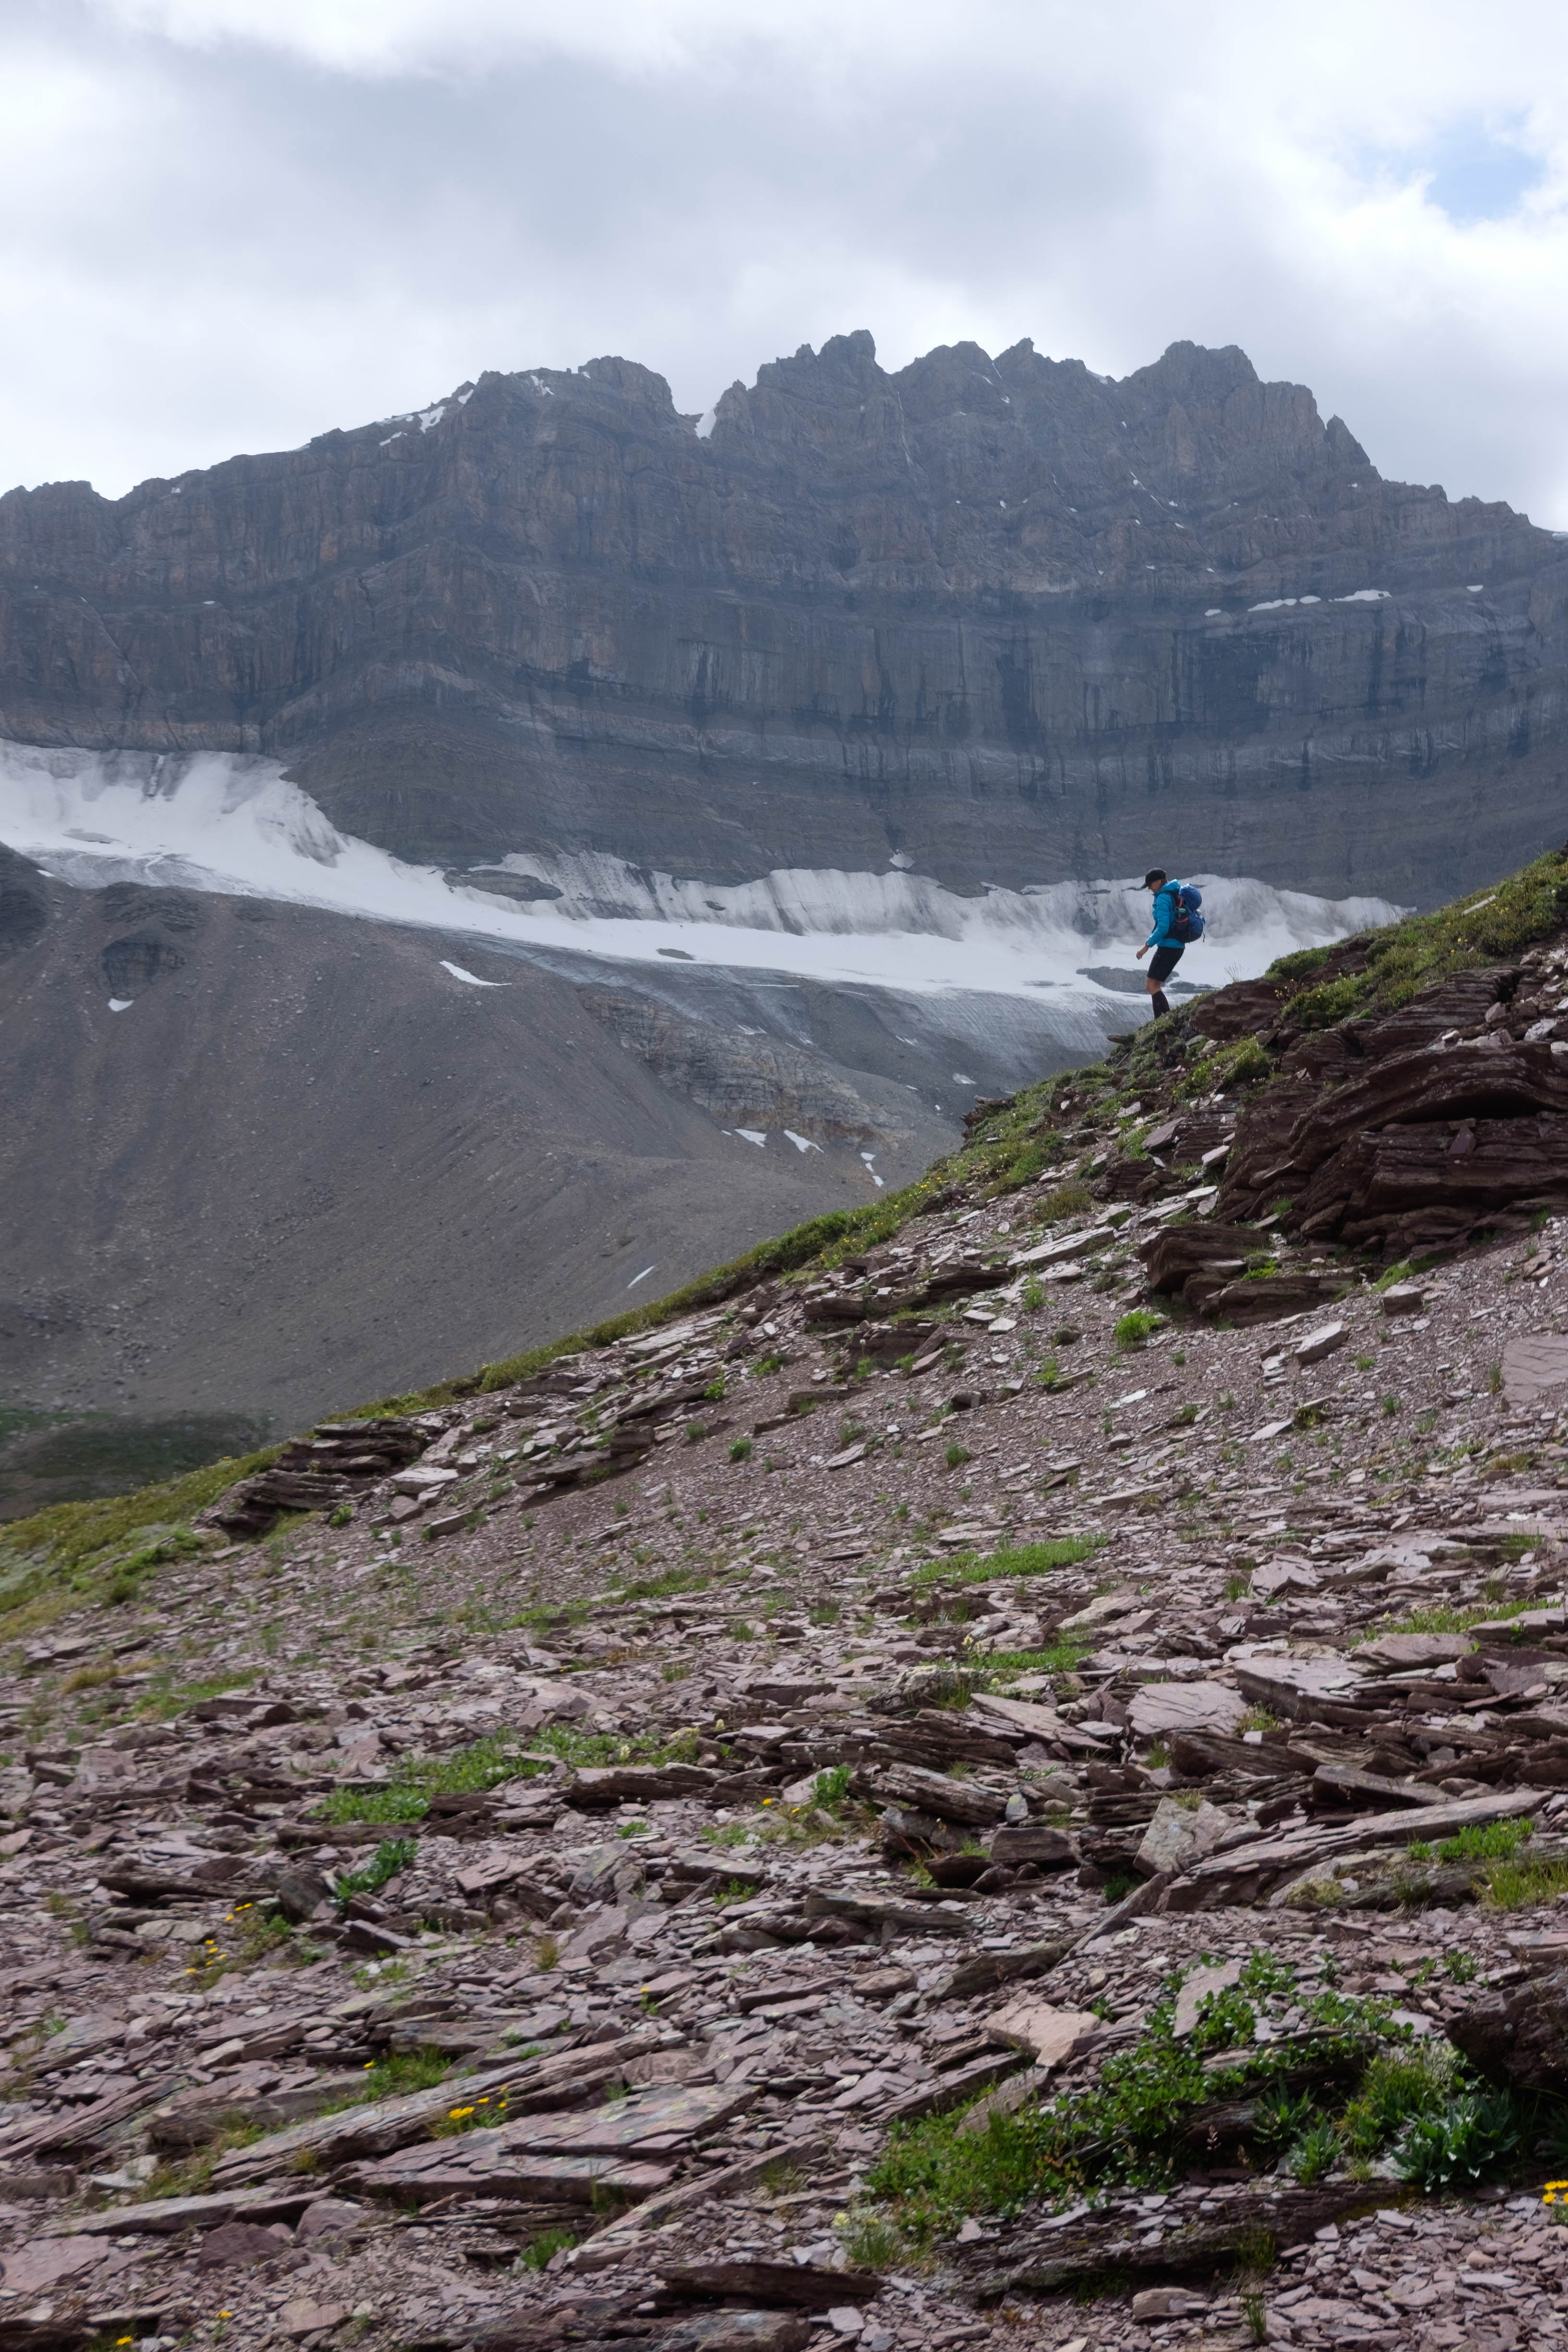 Fish Lakes Adventure – F****ing Porcupines, Kickboxing with Grouse, Hail, Snow, Mosquitoes, and More.